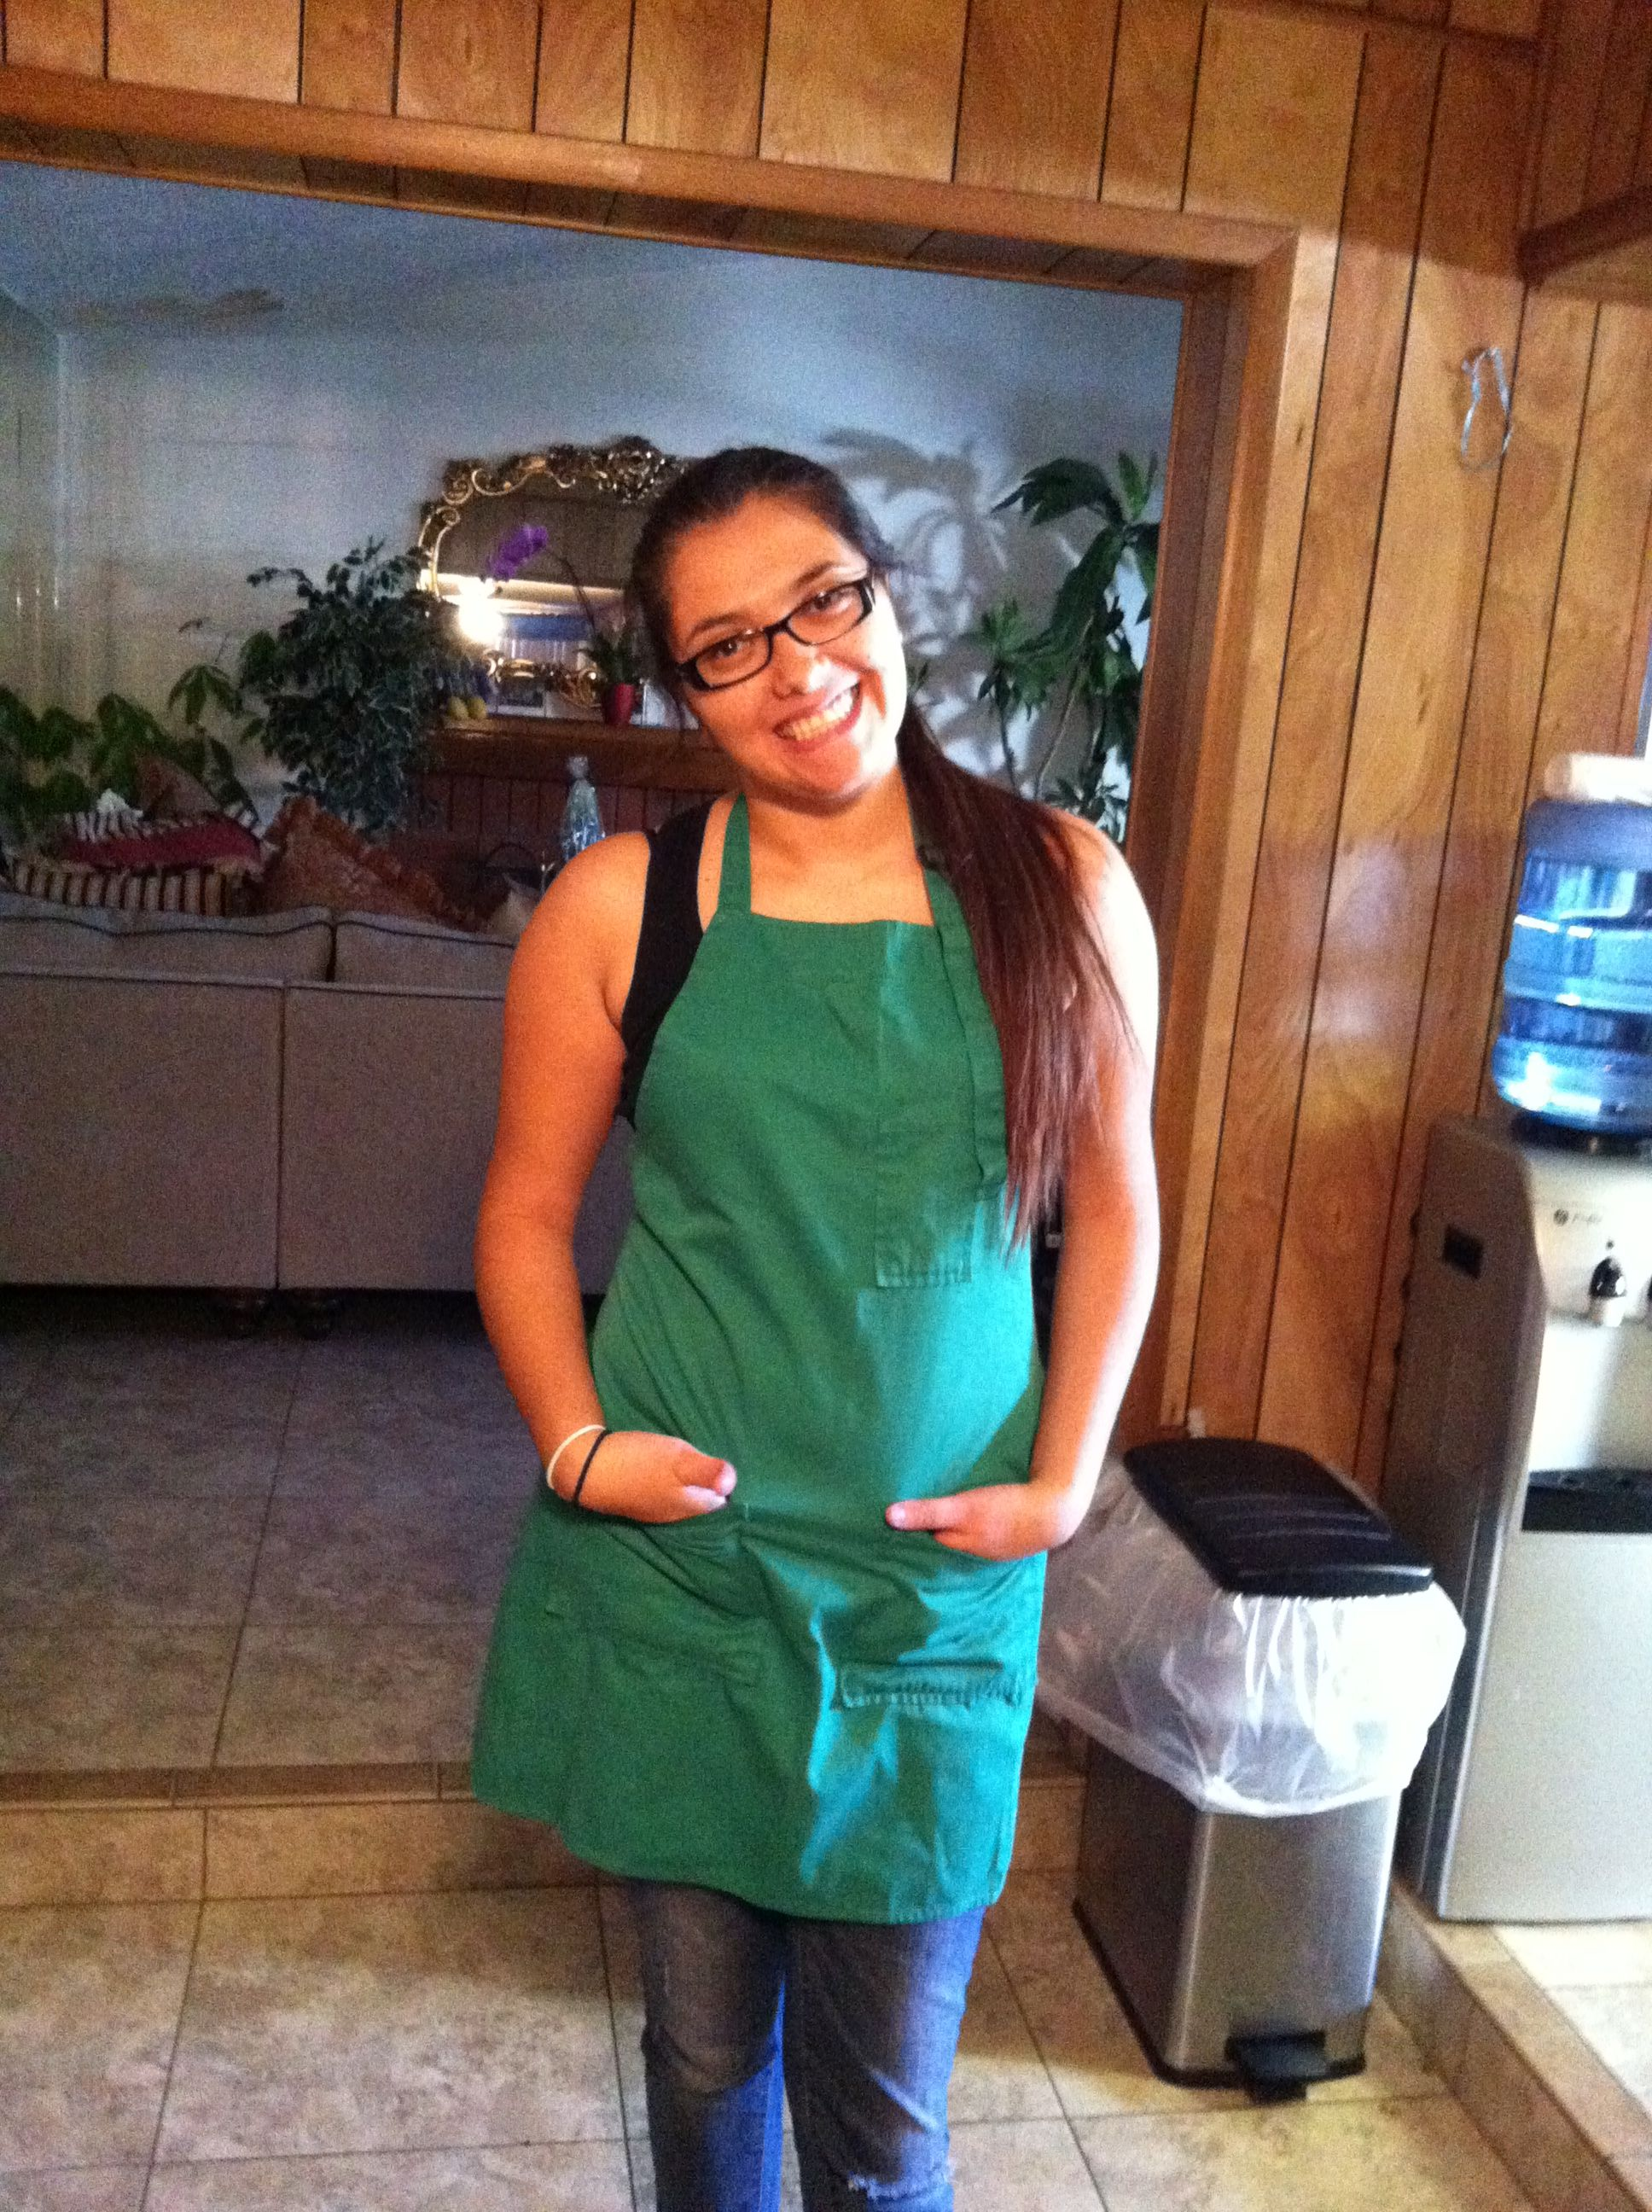 Me with my apron on ready to cook I am going to be the next great baker